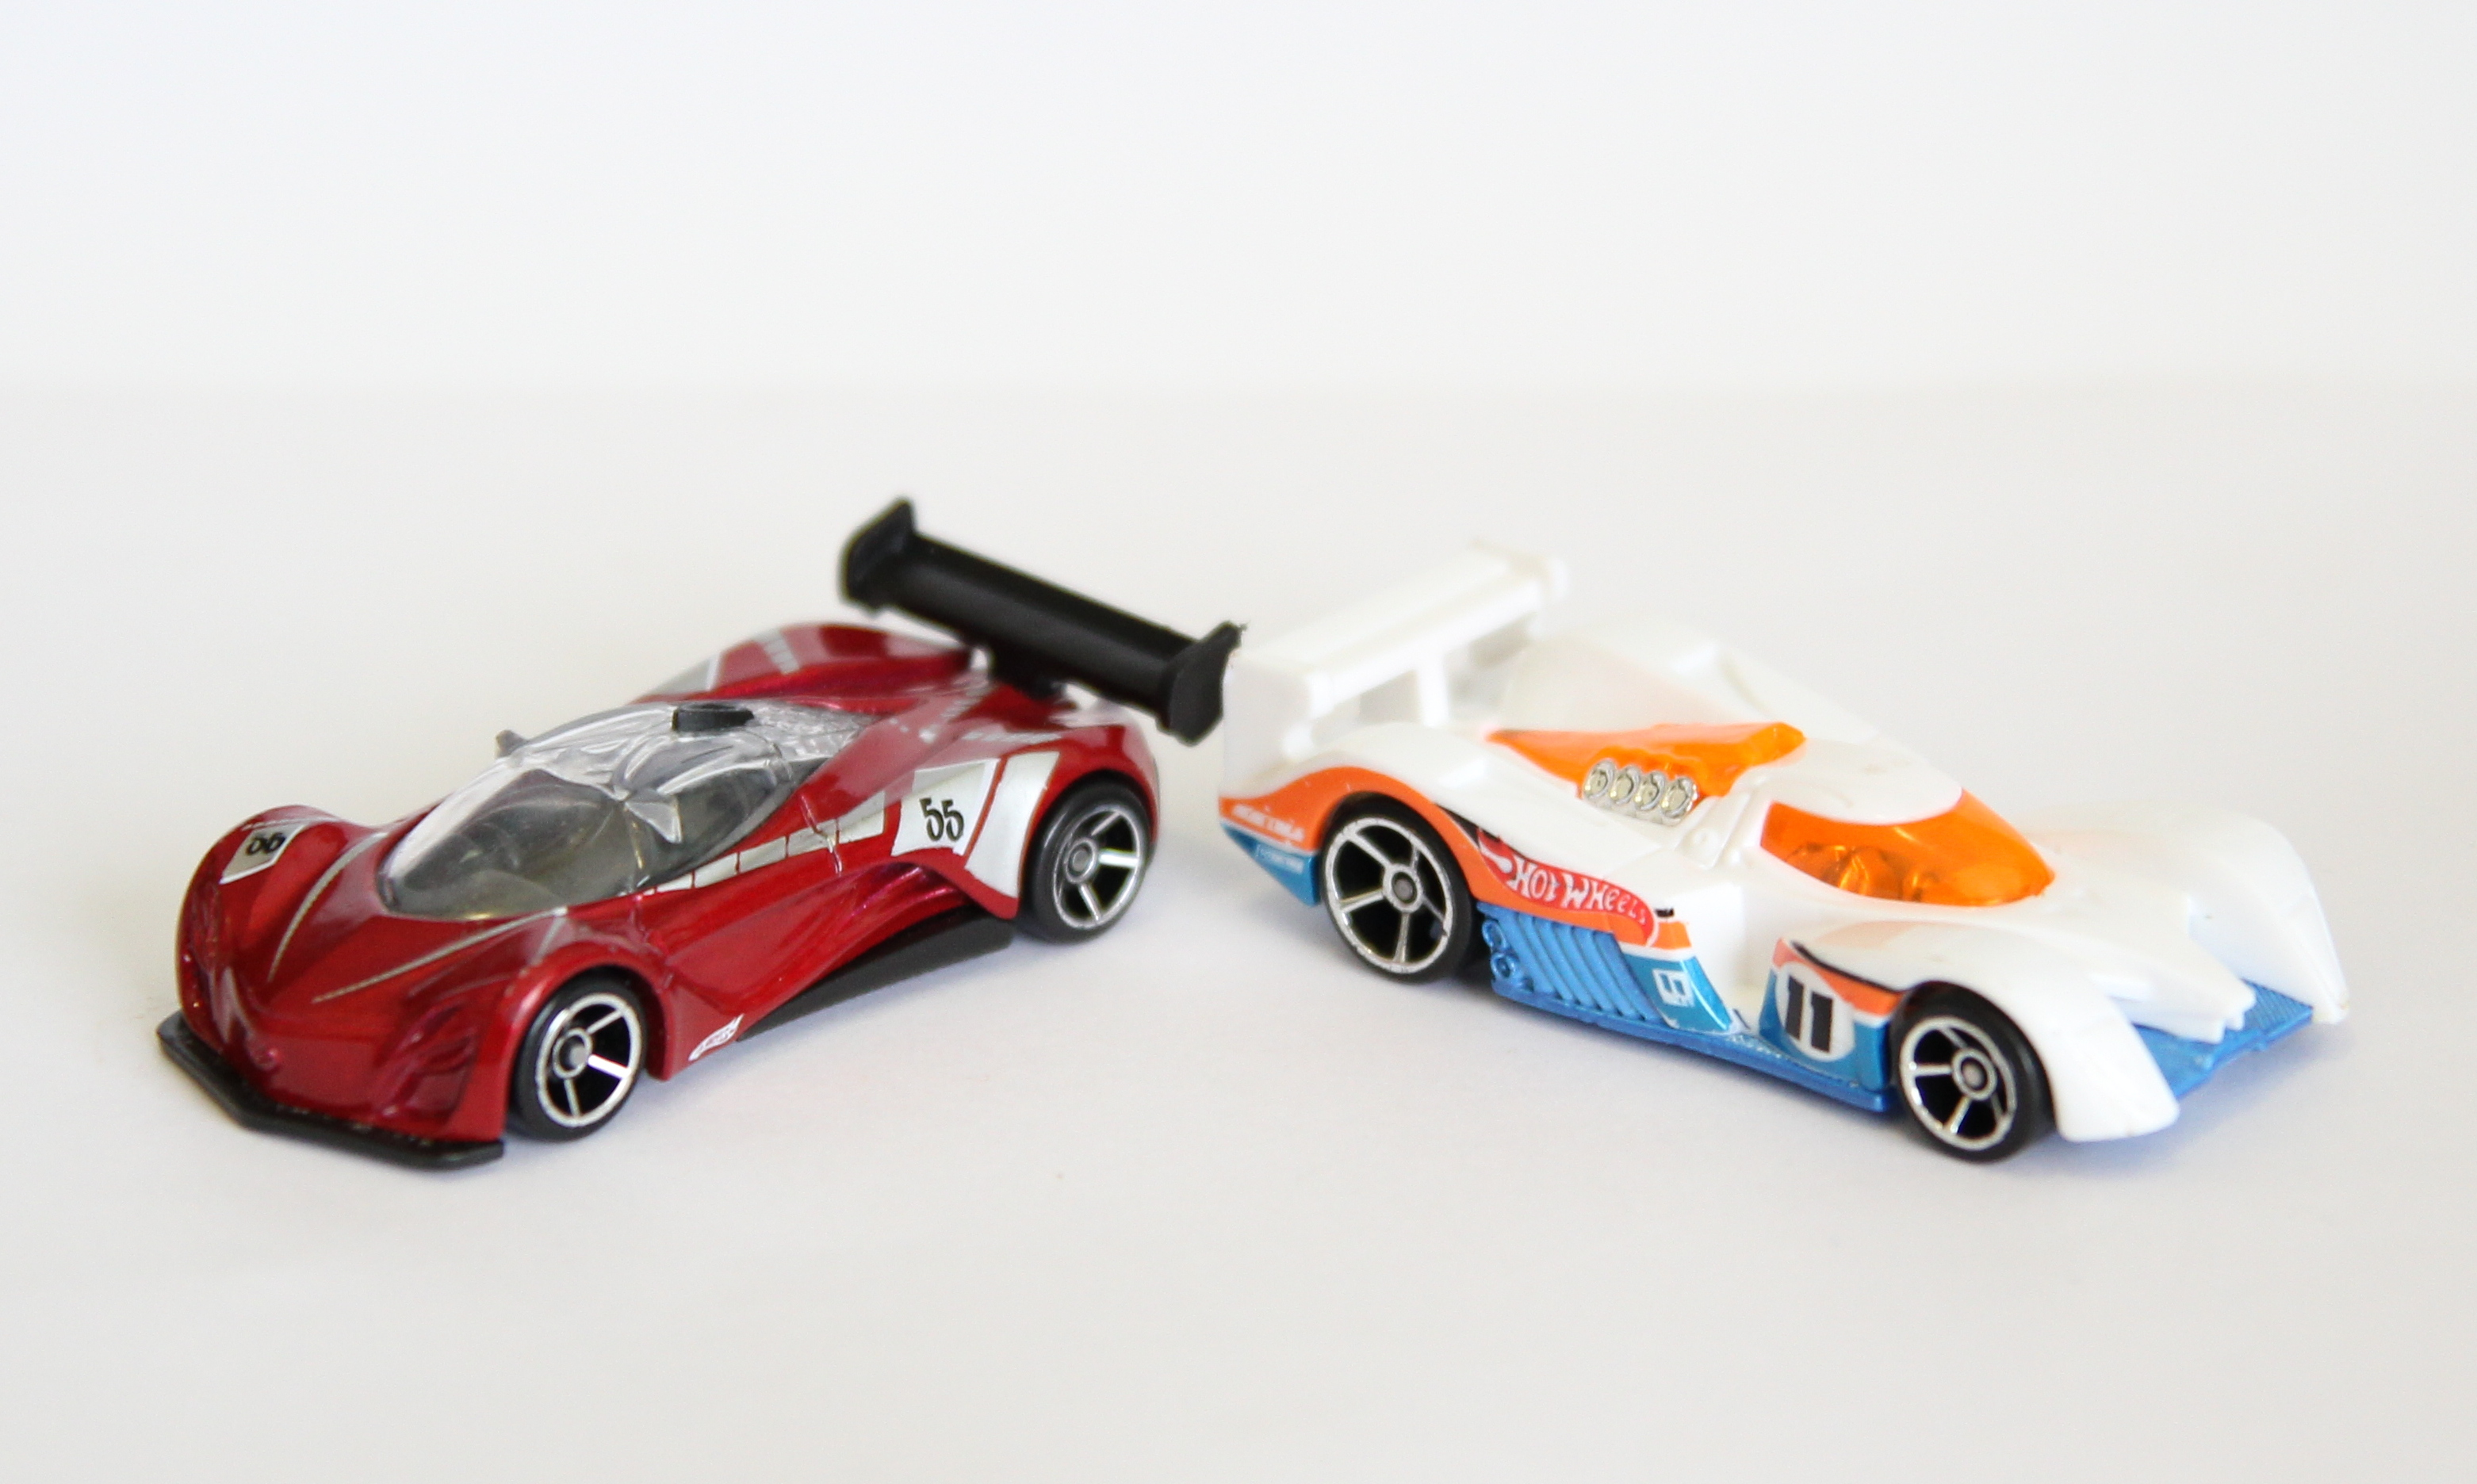 2016 Hot Wheels Tournament